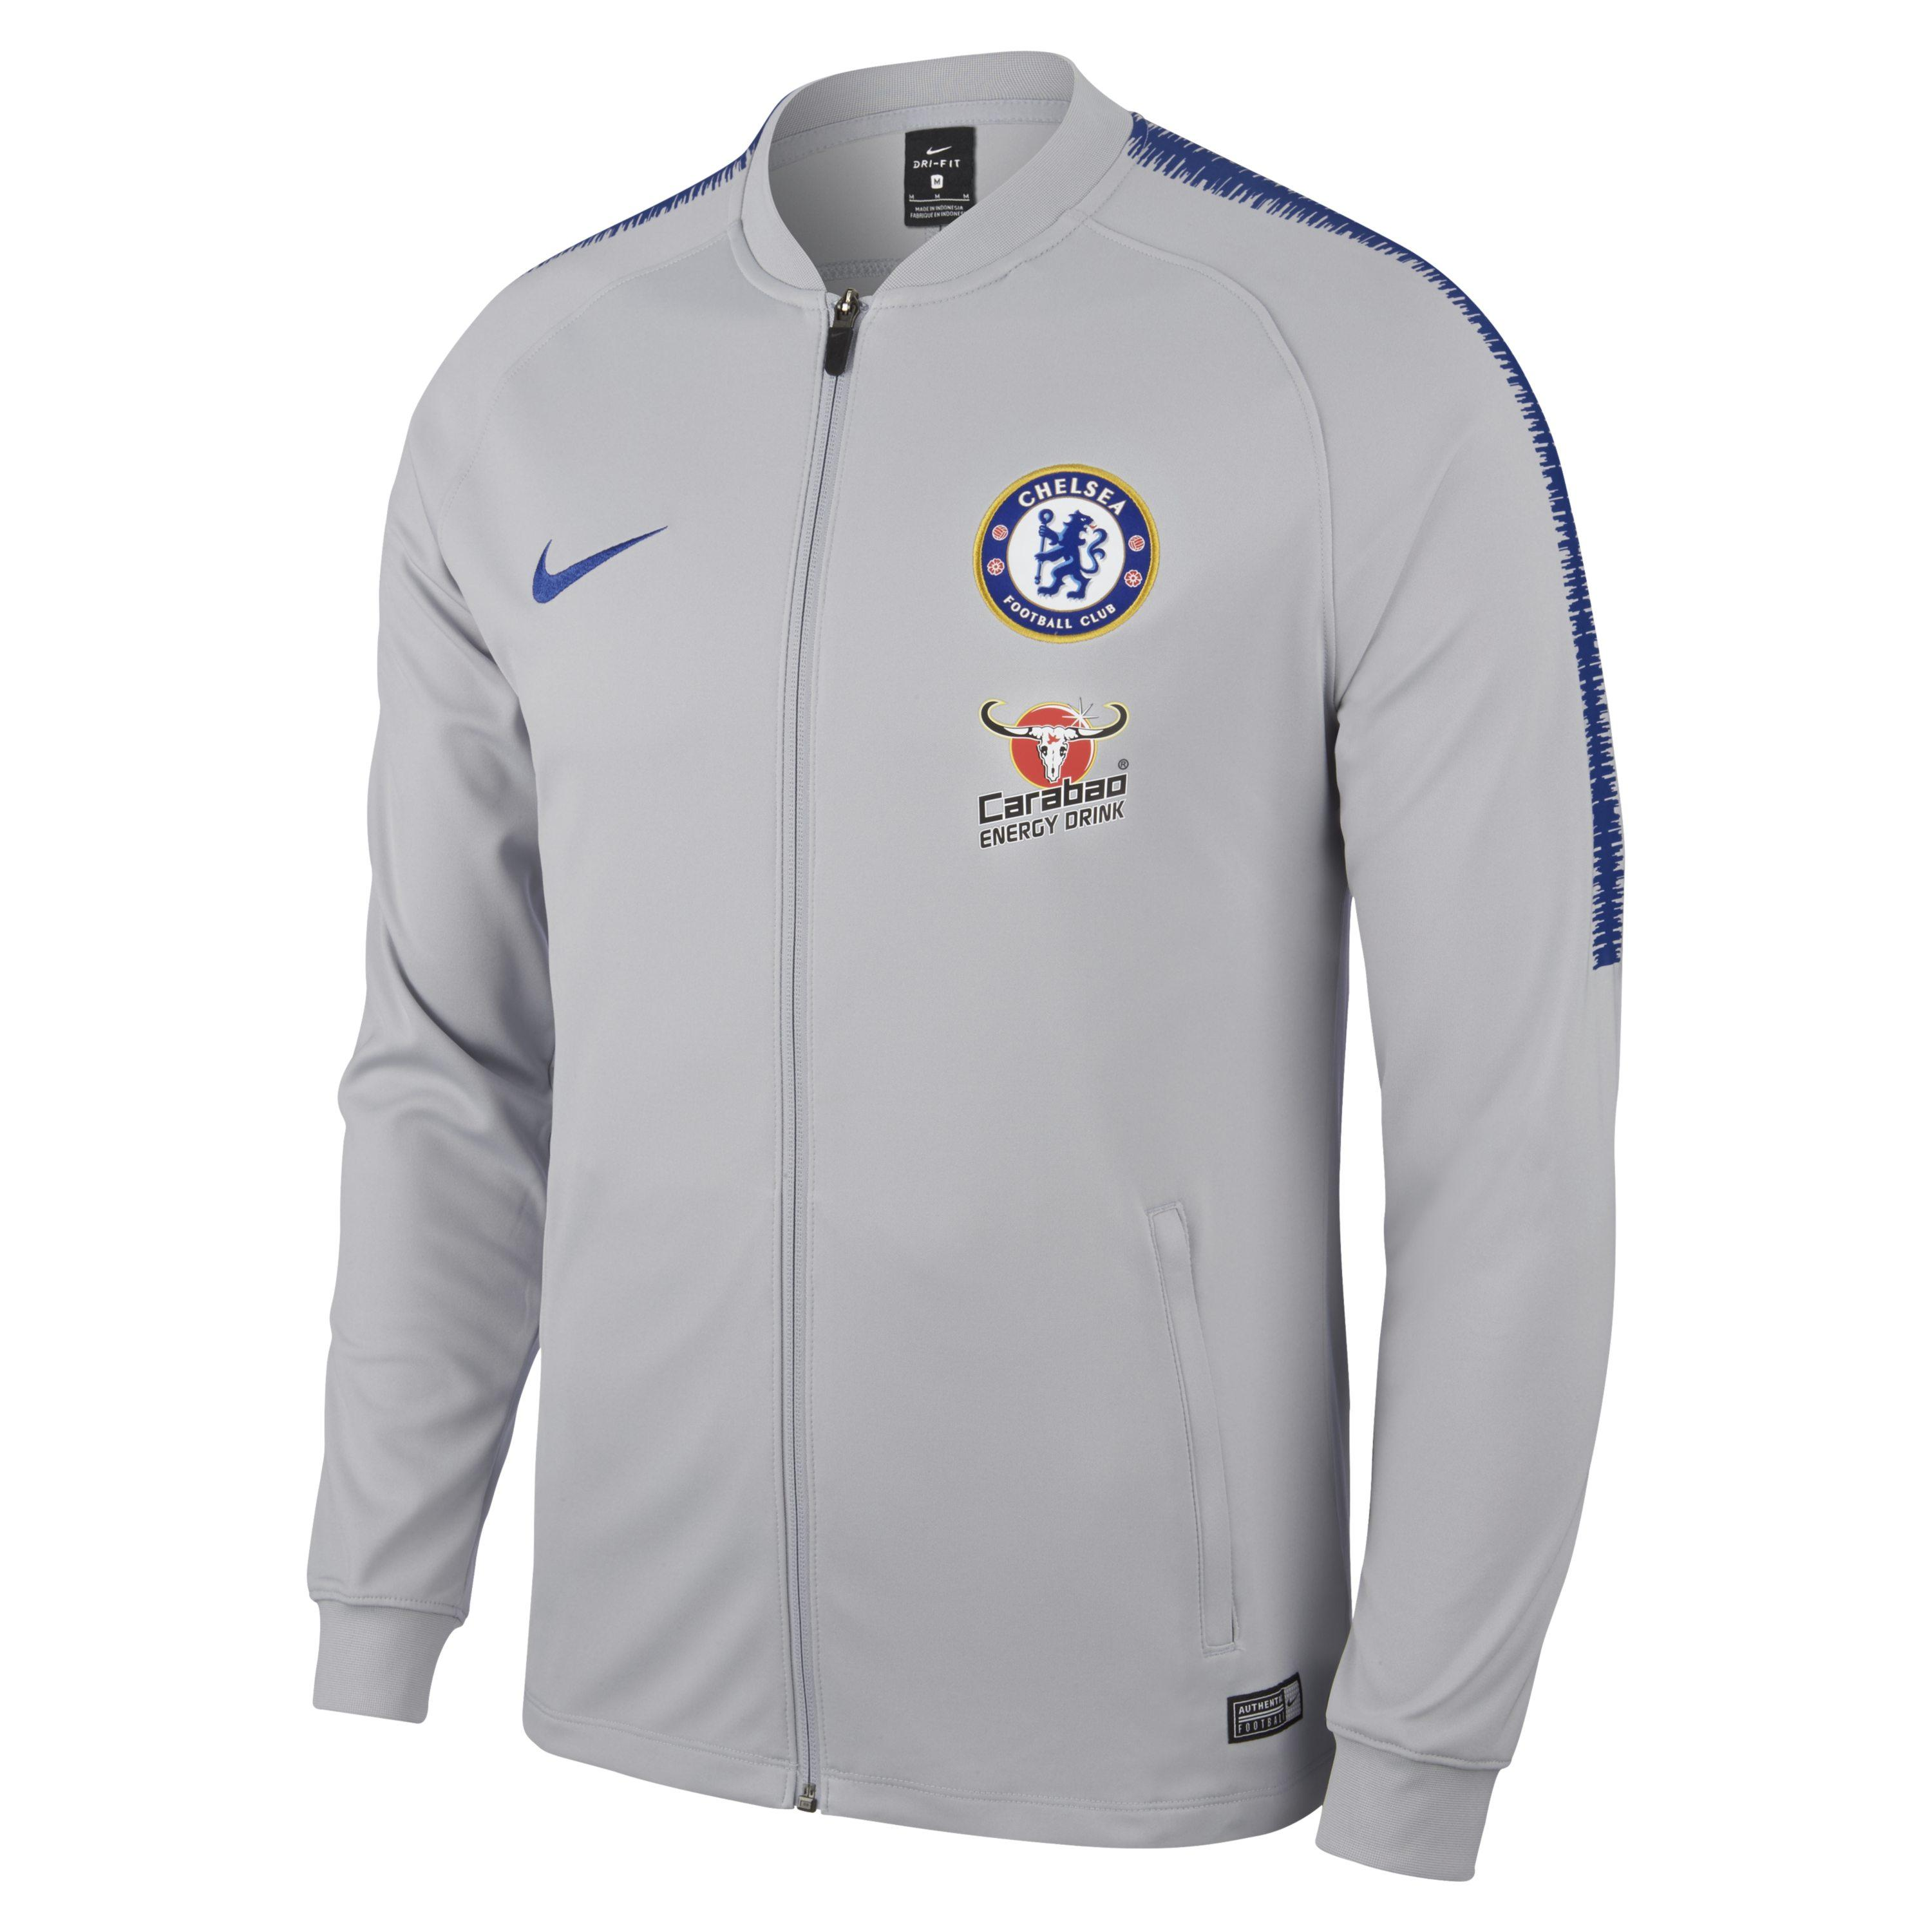 db5e84a47 Nike Chelsea Fc Dri-fit Squad Football Track Jacket in Gray for Men ...